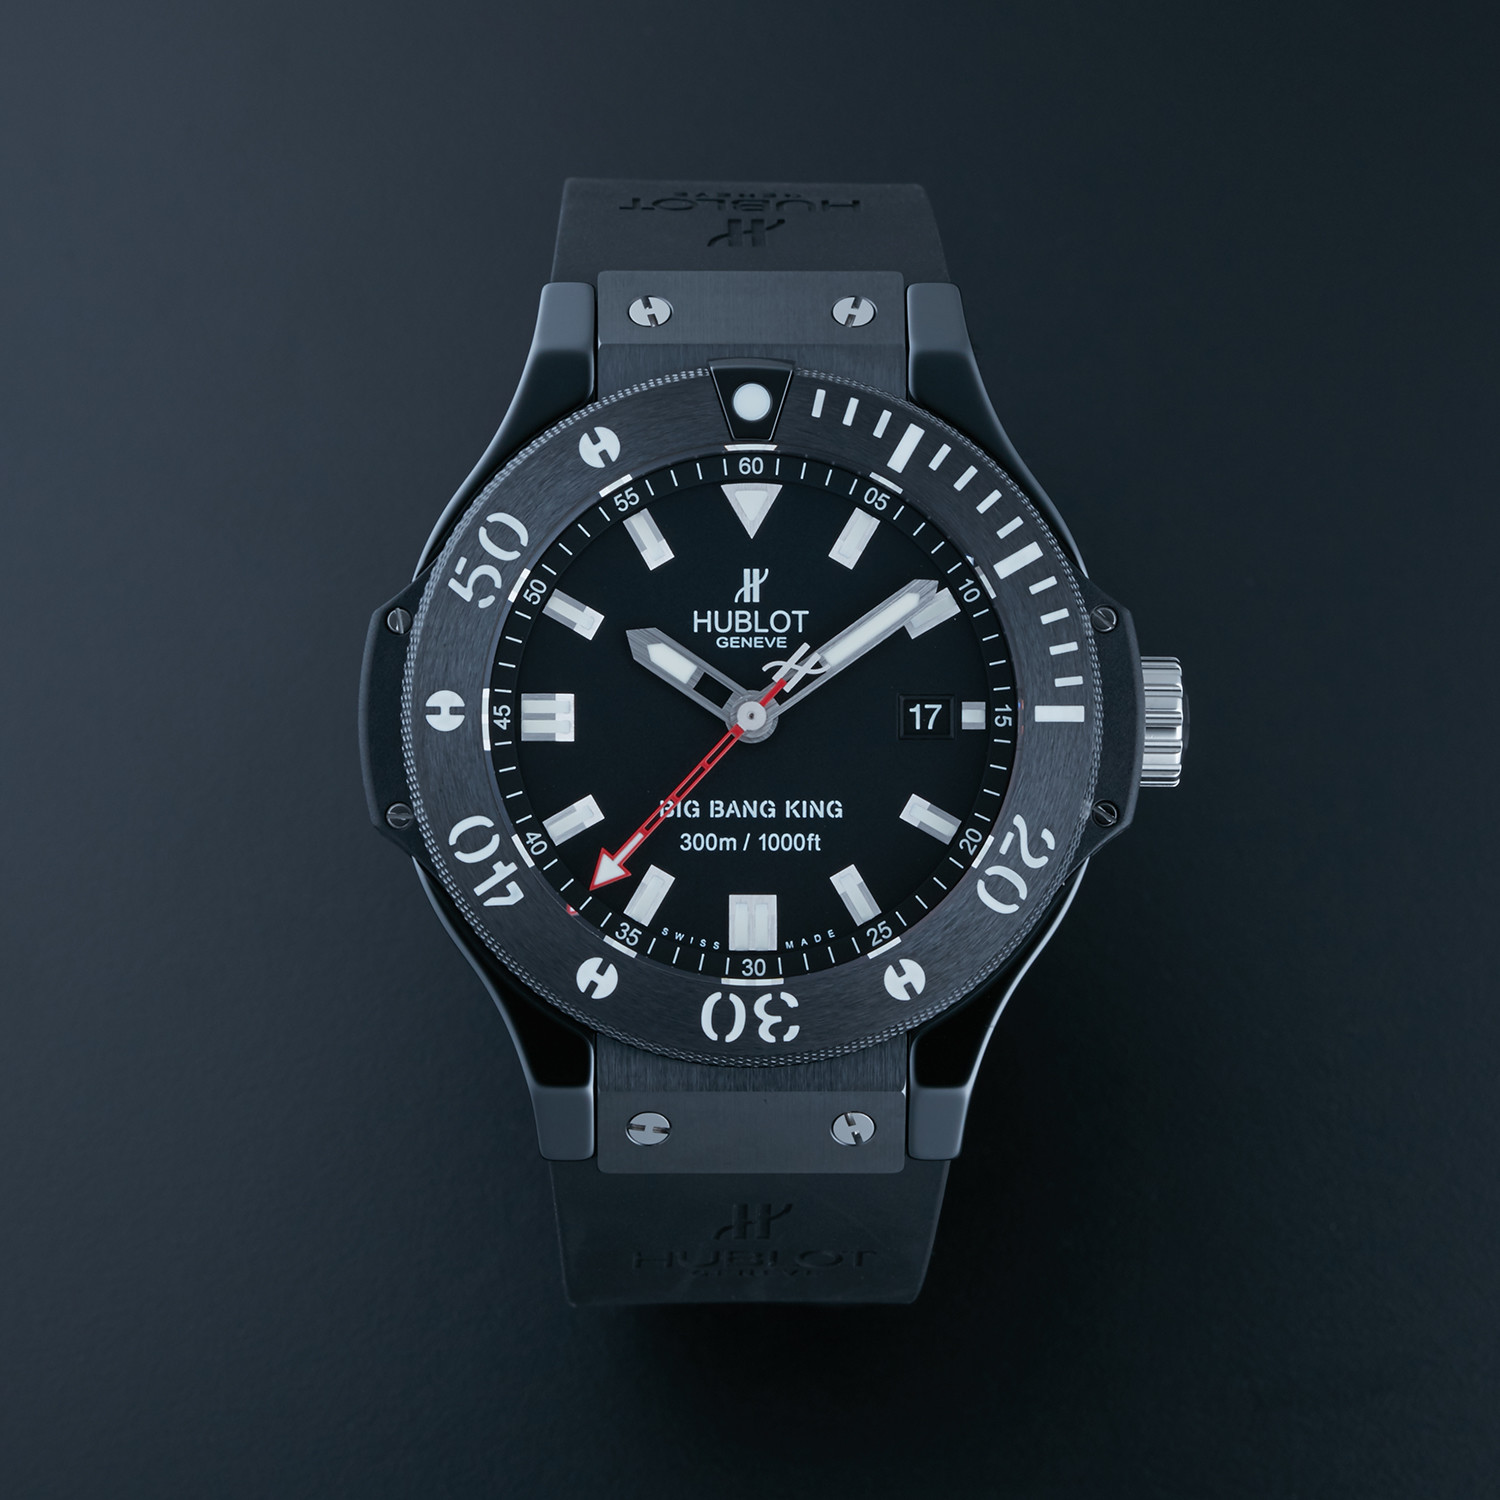 Hublot Ceramic Big Bang King Black Magic Automatic 312 Cm 1120 Rx Hublot Touch Of Modern